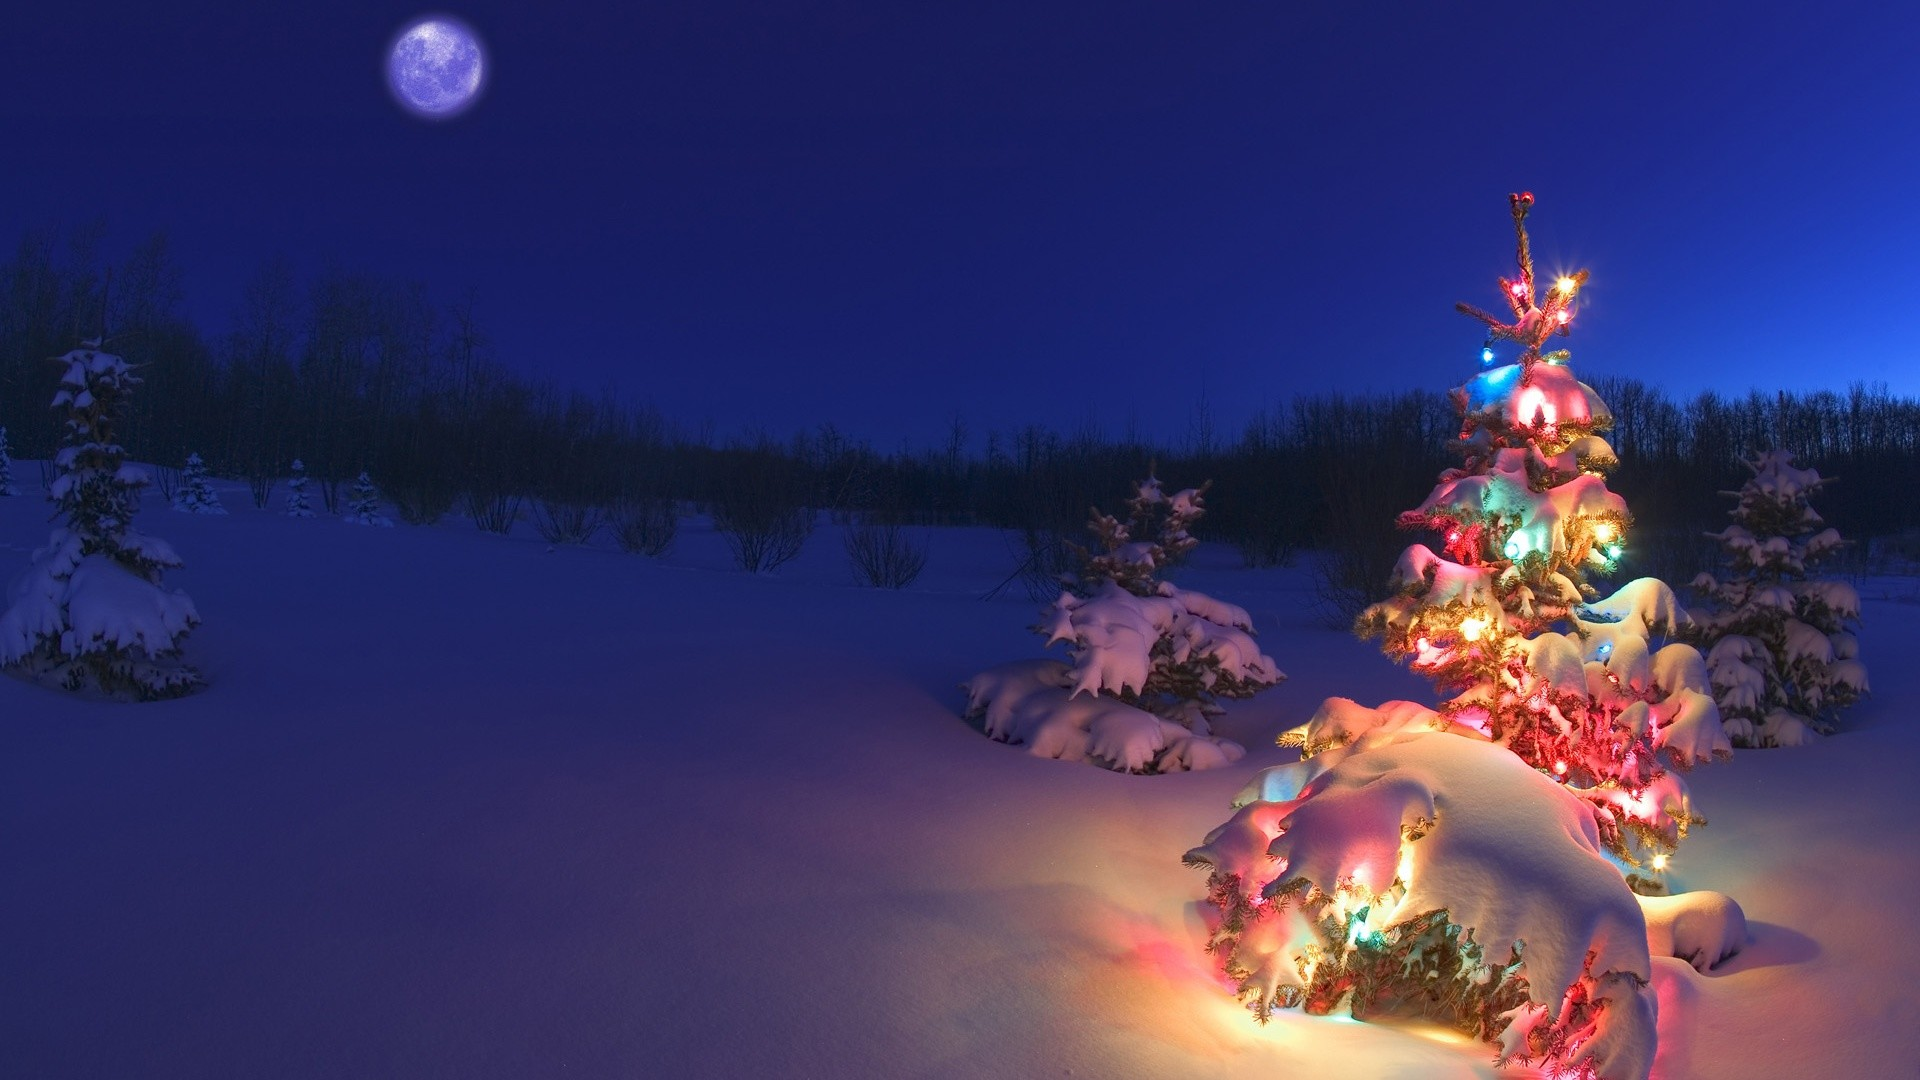 1920x1080 15 HD Holiday Lights Desktop Wallpapers For Free Download